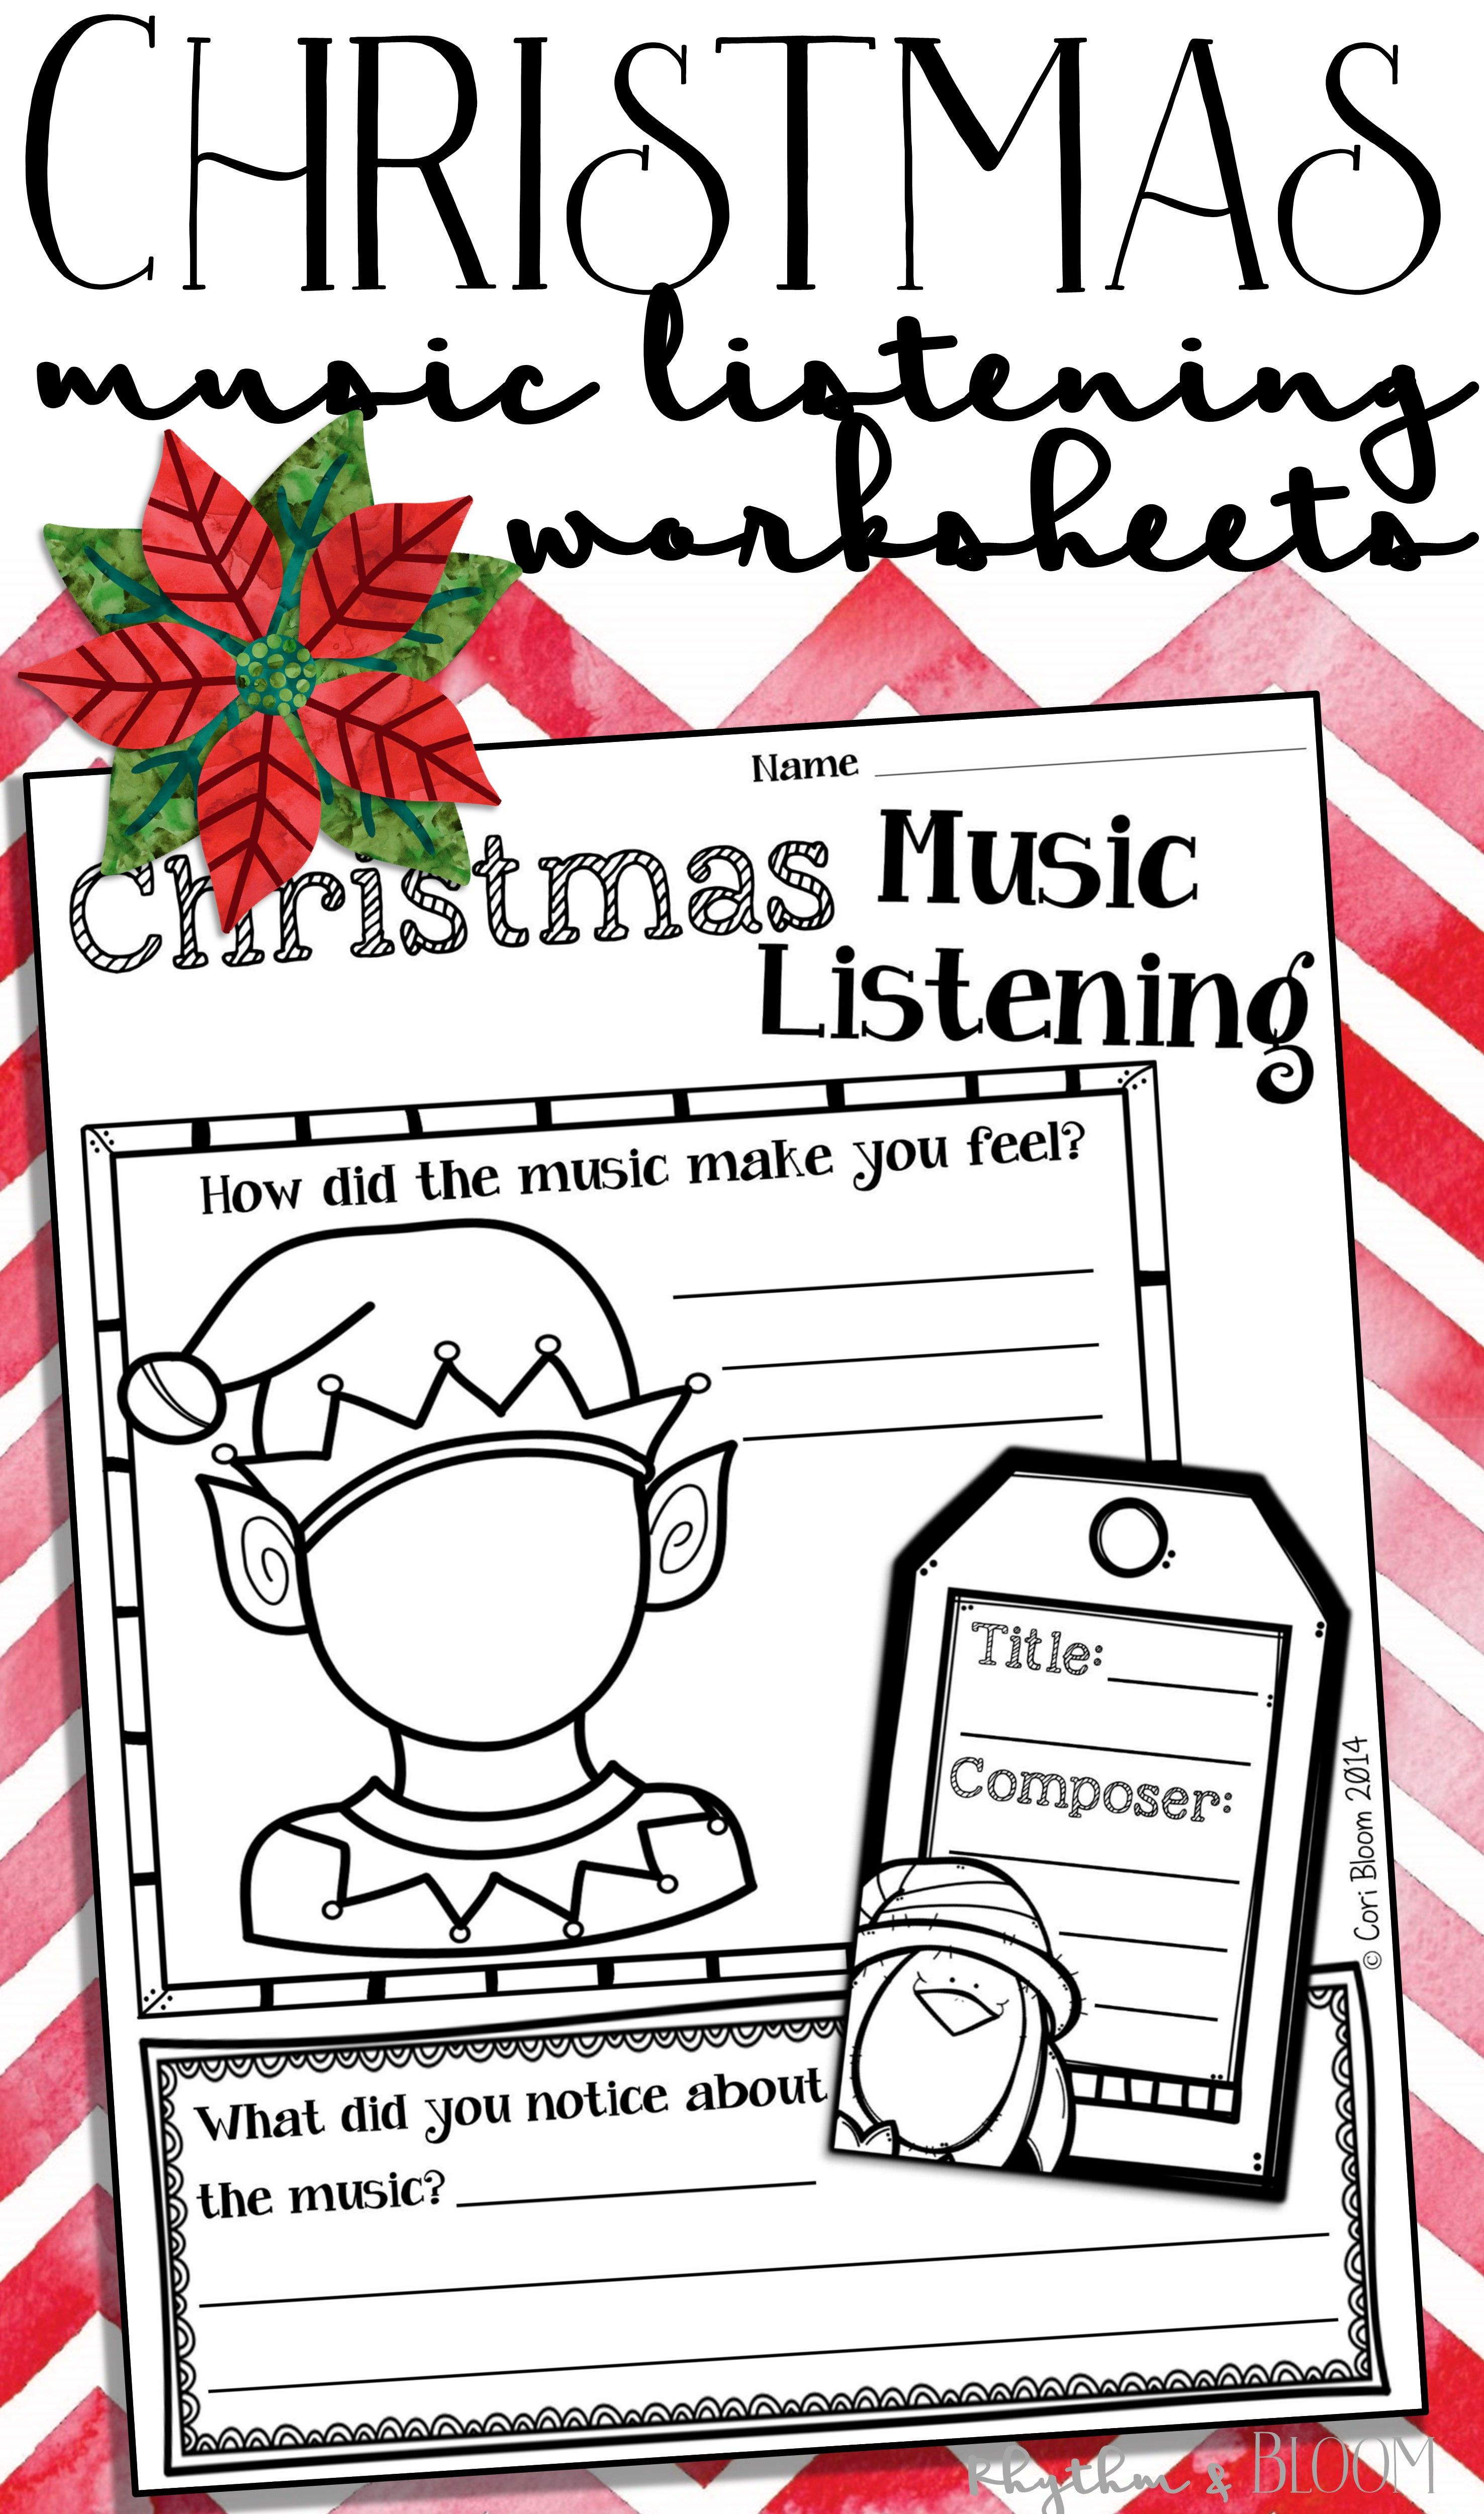 FREE Christmas & Winter Holiday Music Listening Worksheets: Easy to ...